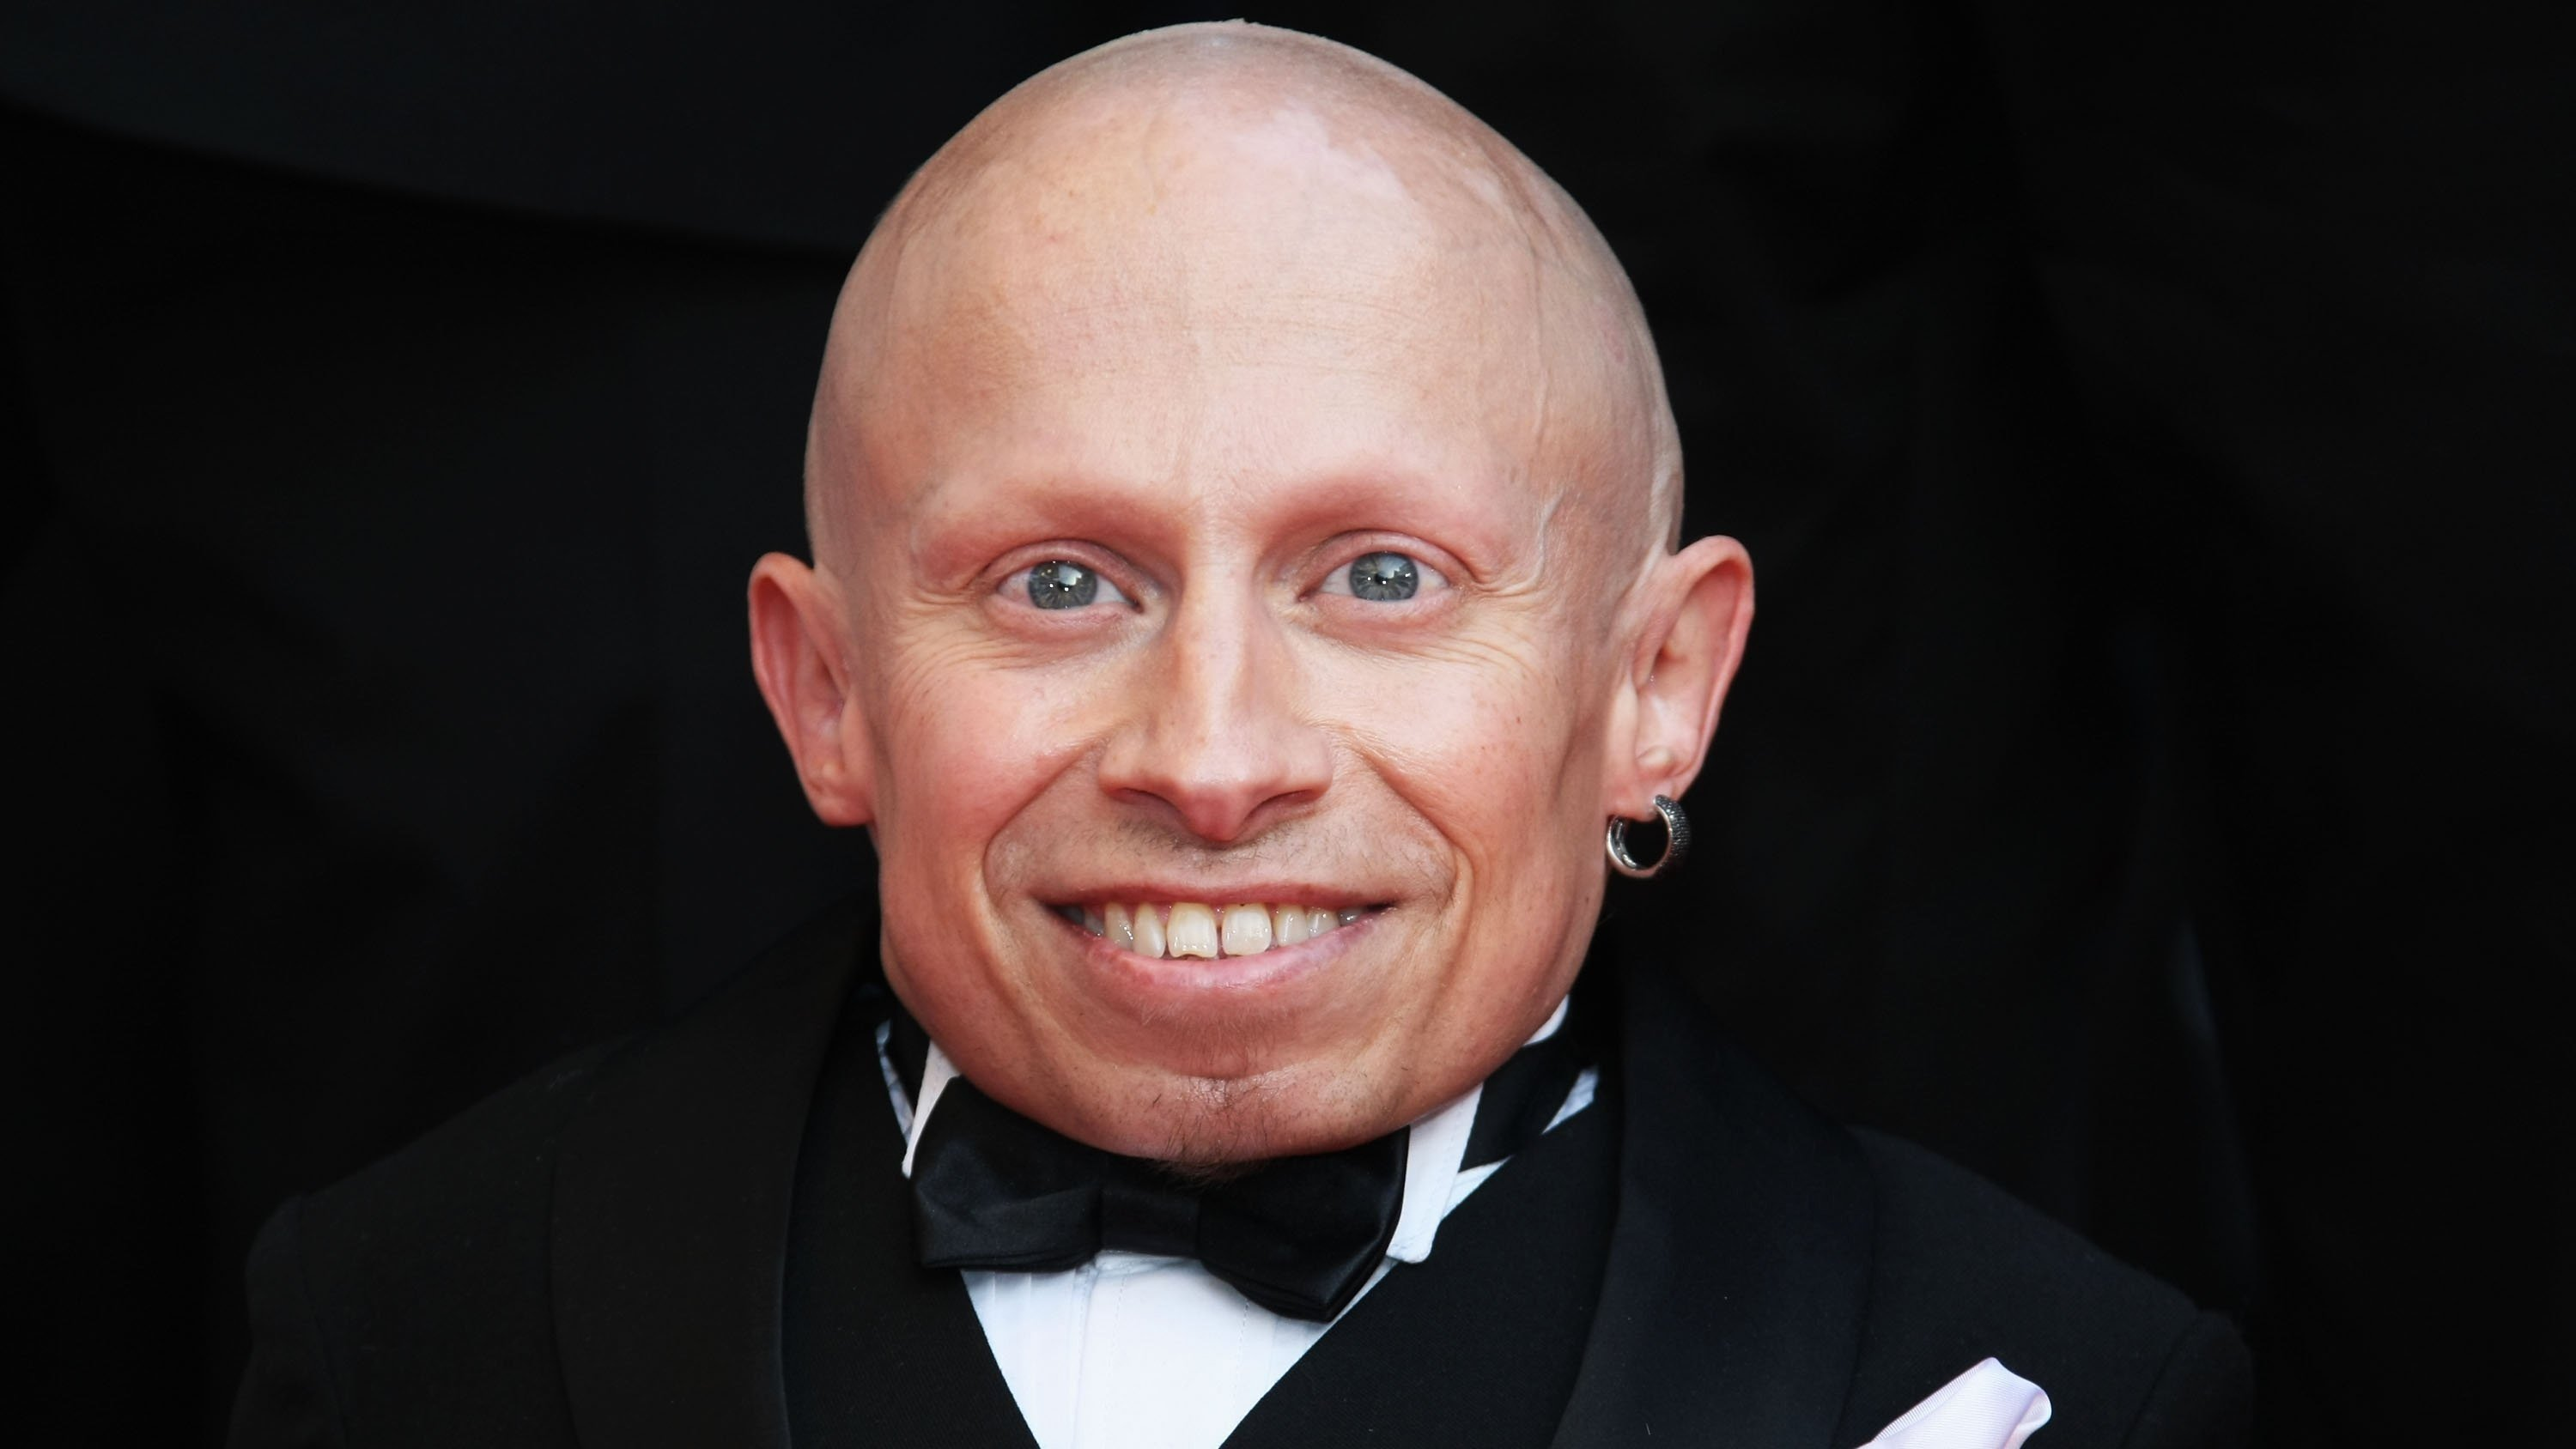 Actor Verne Troyer, seen at the Cannes Film Festival n 2009. Troyer died at age 49.